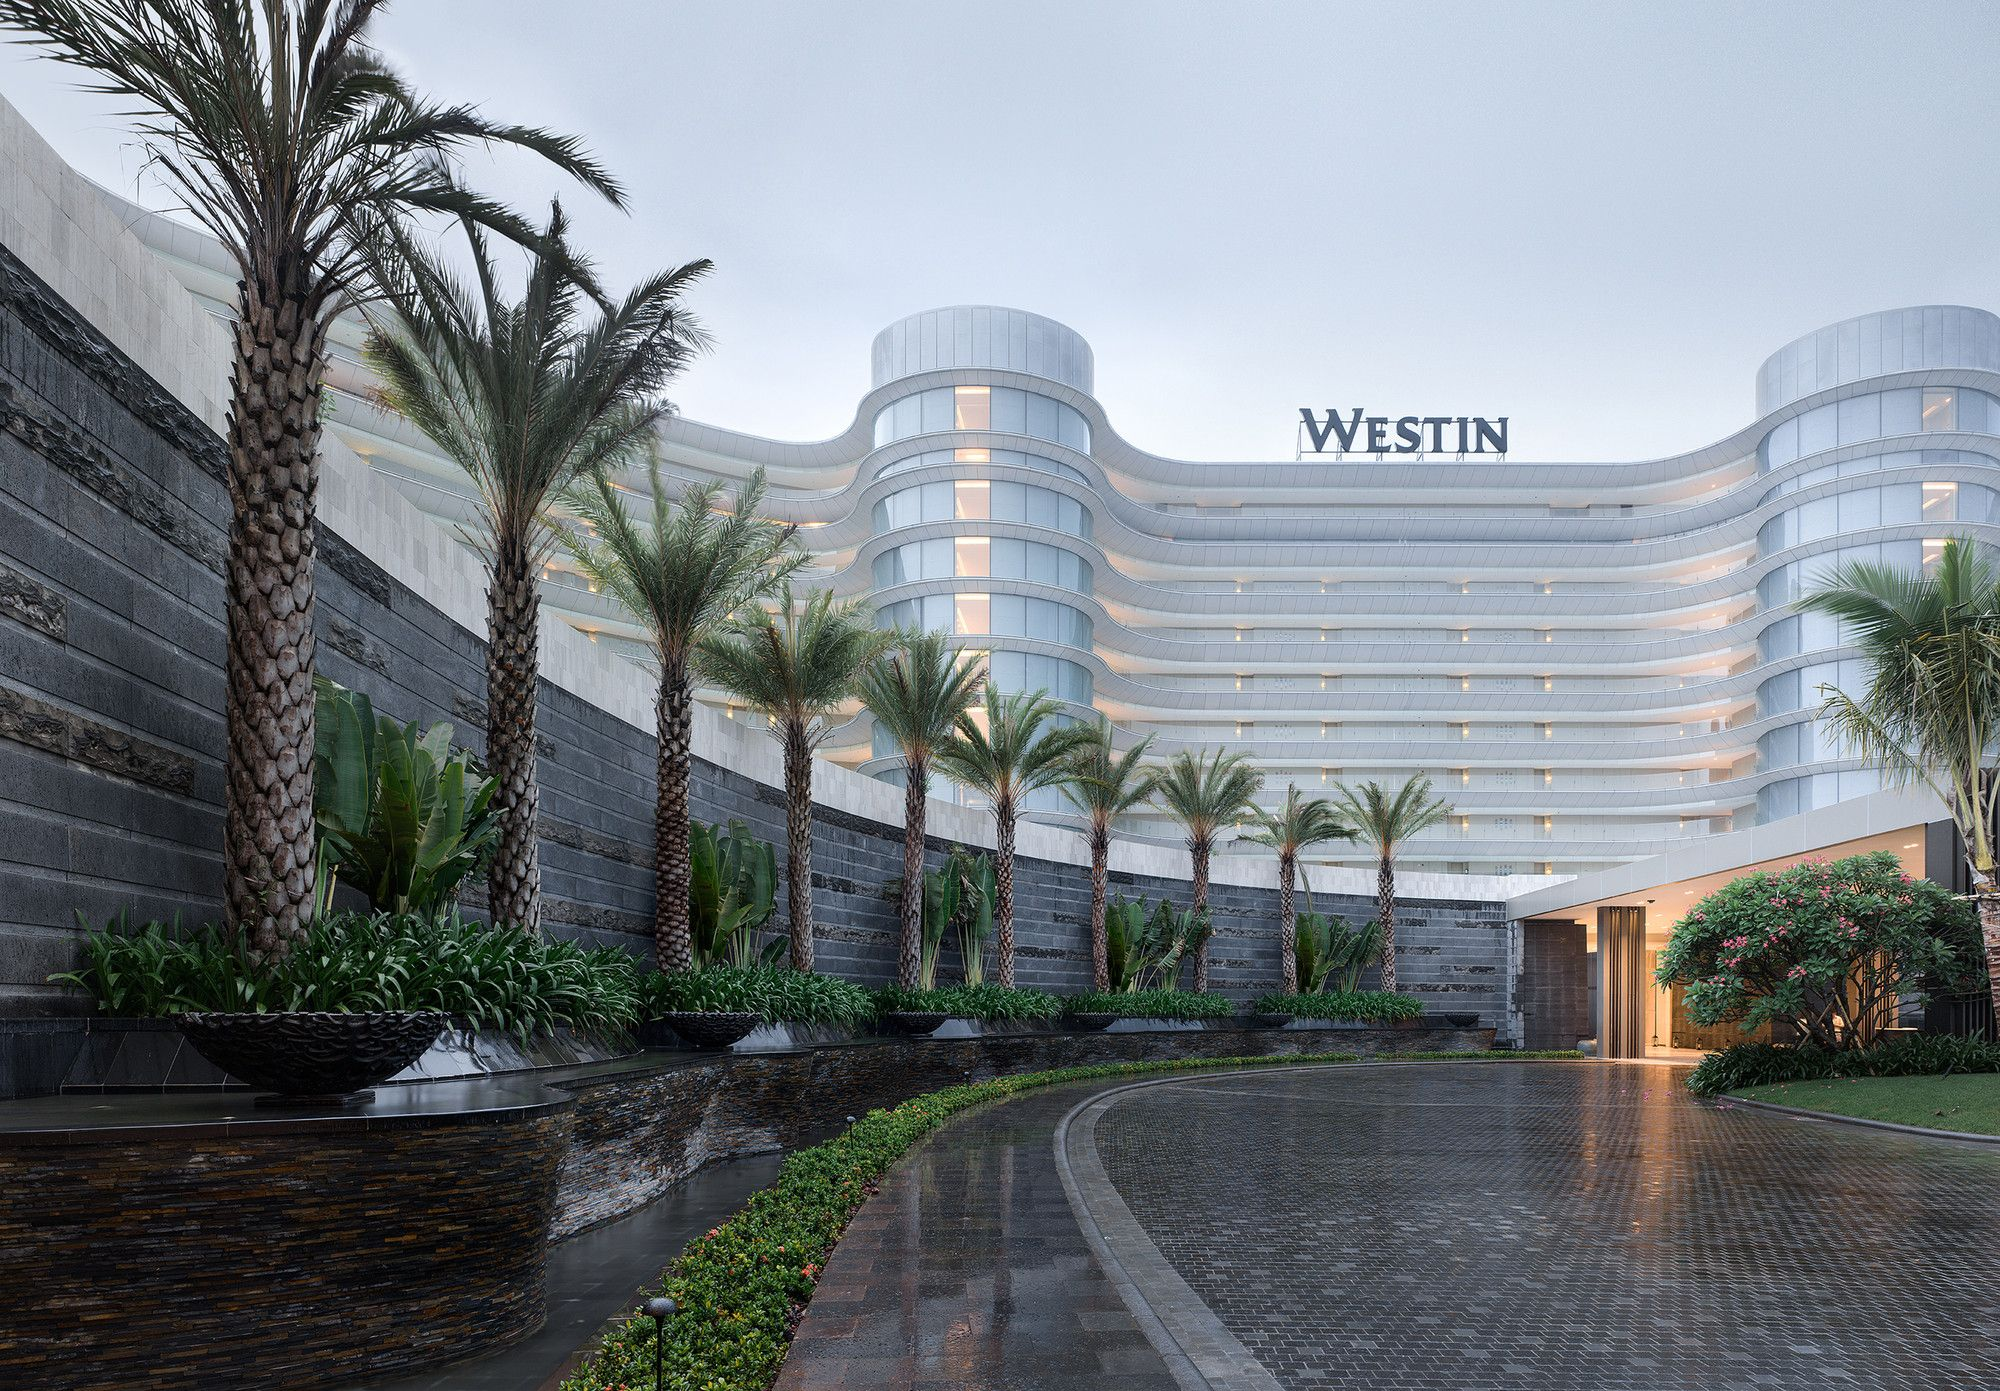 Gallery - Hainan Blue Bay Westin Resort Hotel / gadZhejiang Greenton  Architectural Design -